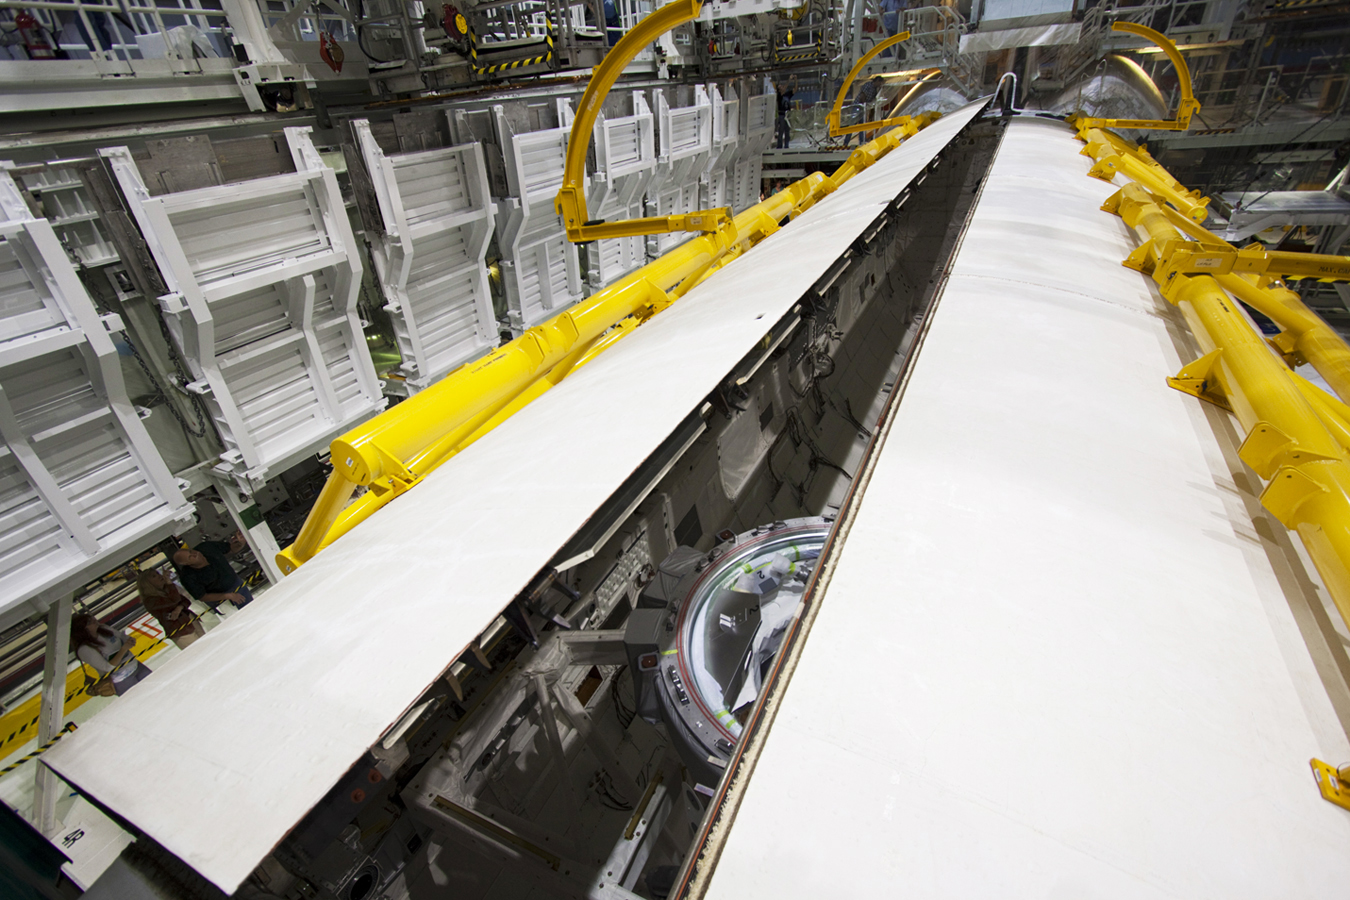 space shuttle payload bay doors - photo #29